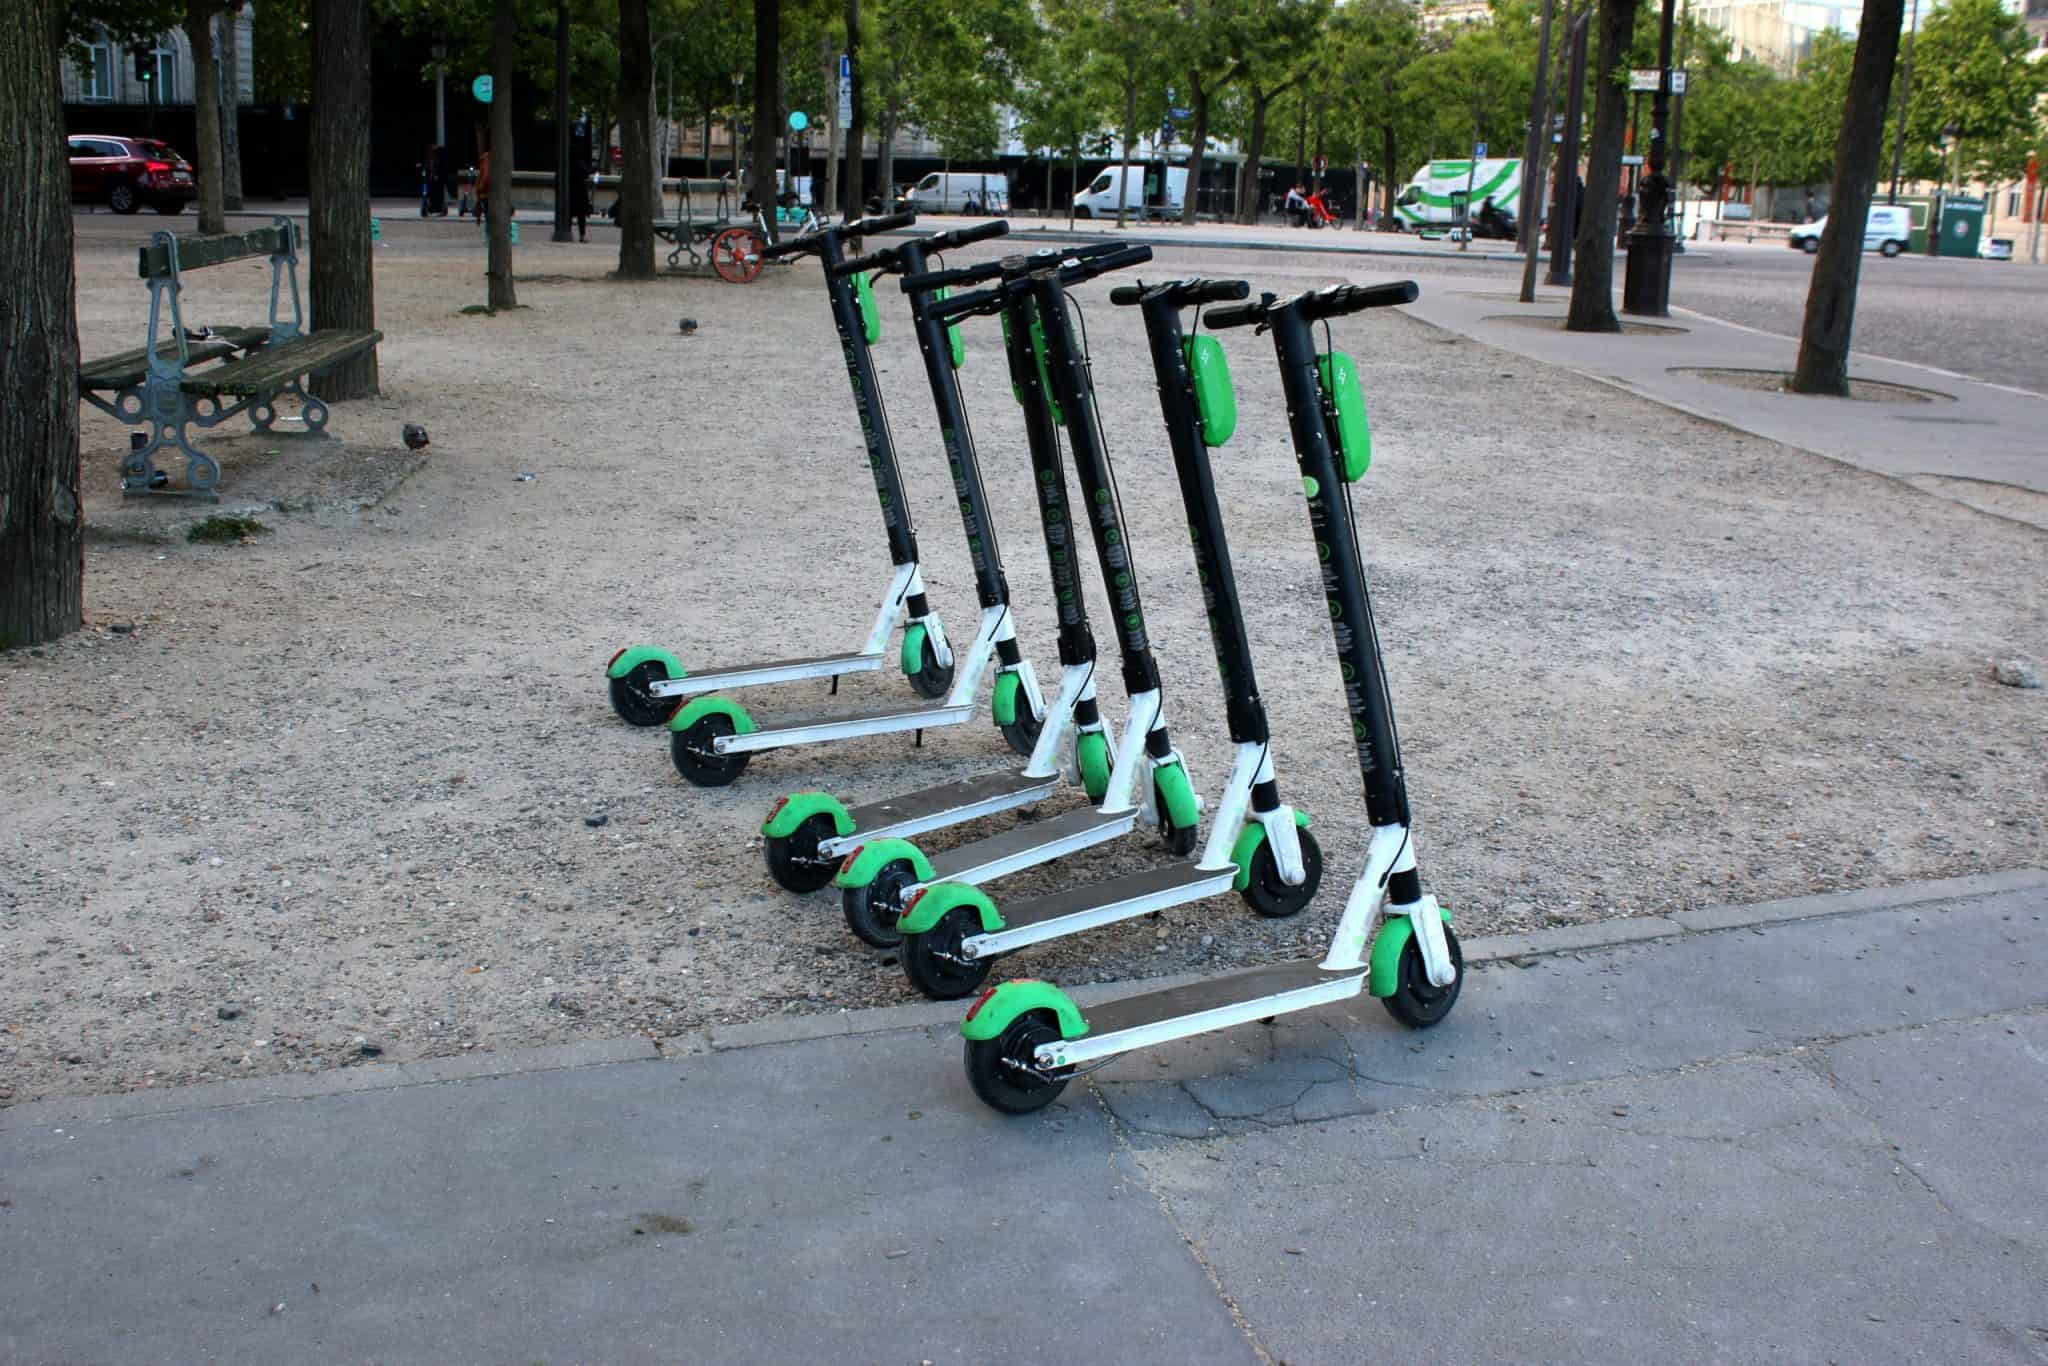 Lime rental Scooters in Paris